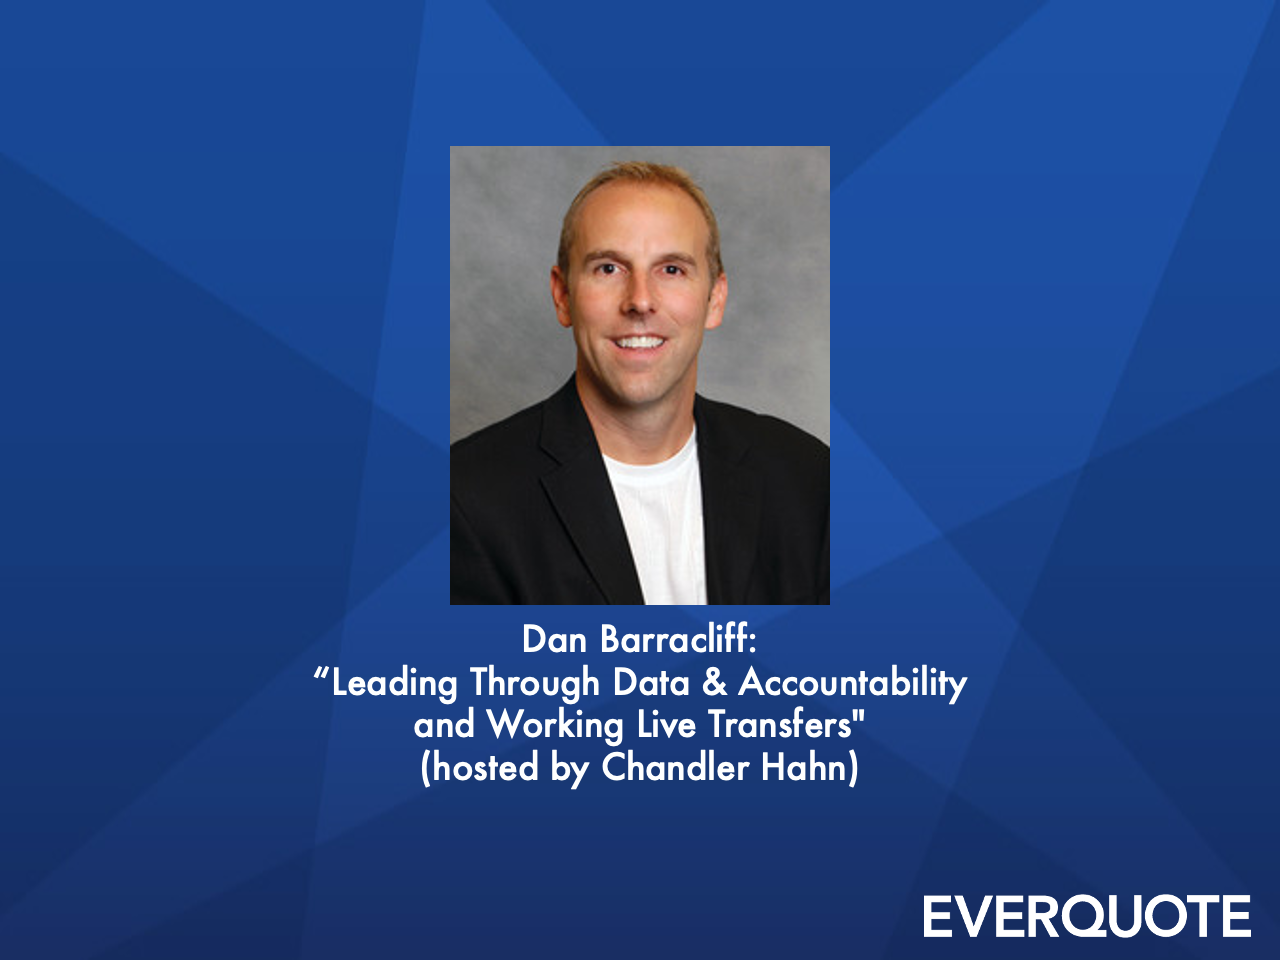 Leading Through Data & Accountability and Working Live Transfers with Dan Barracliff